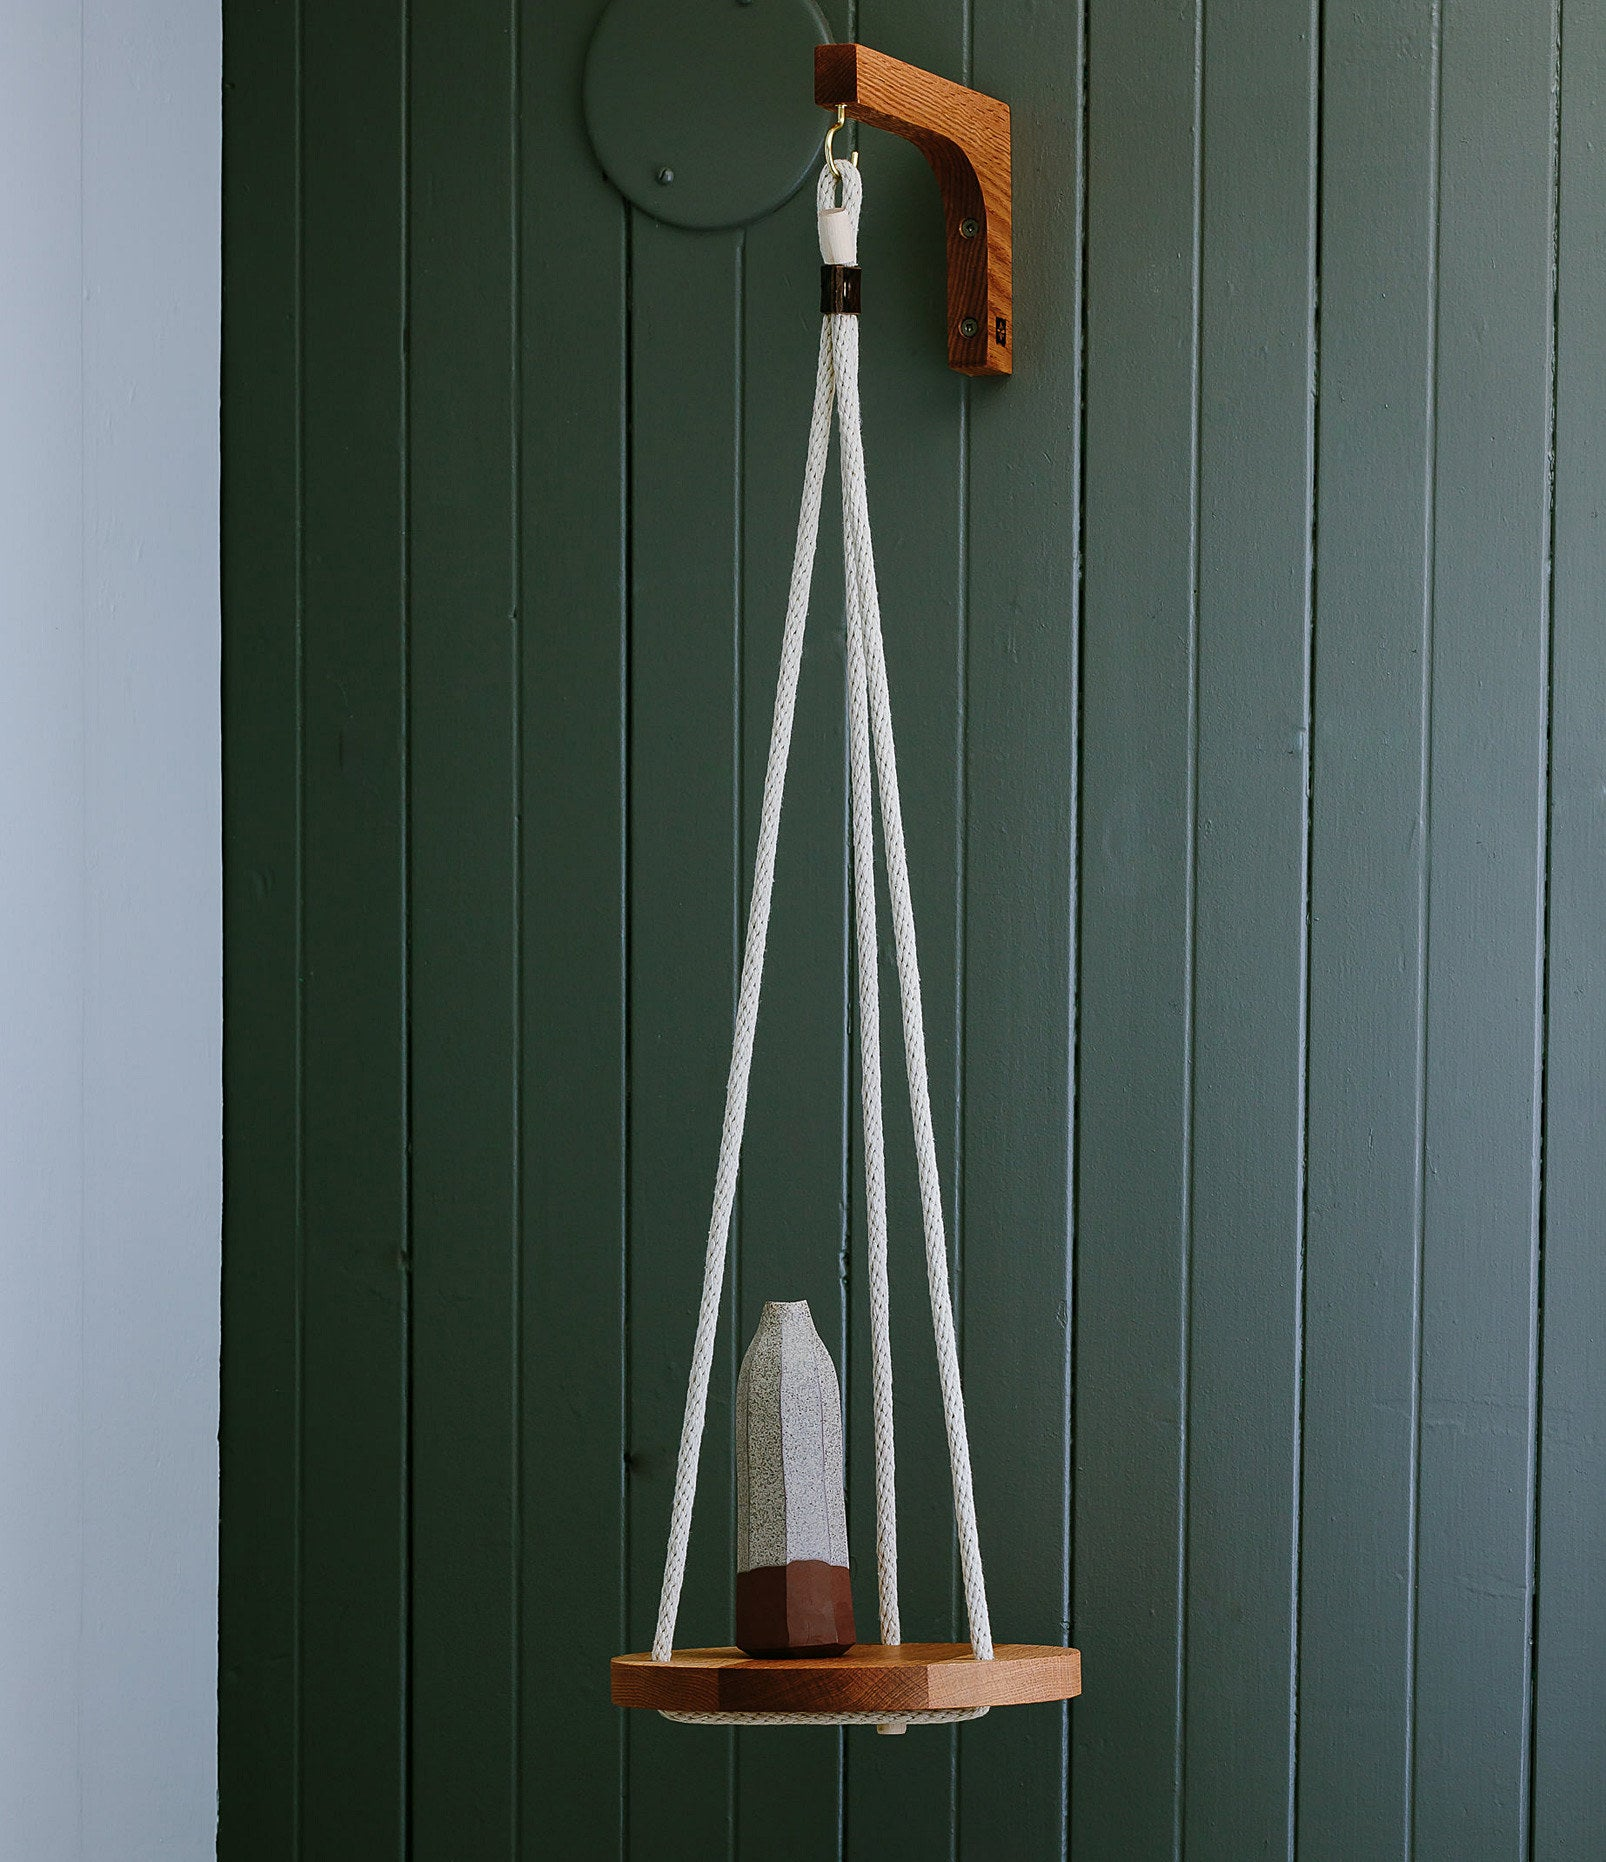 A hanging shelf with a decorative vase sitting on it